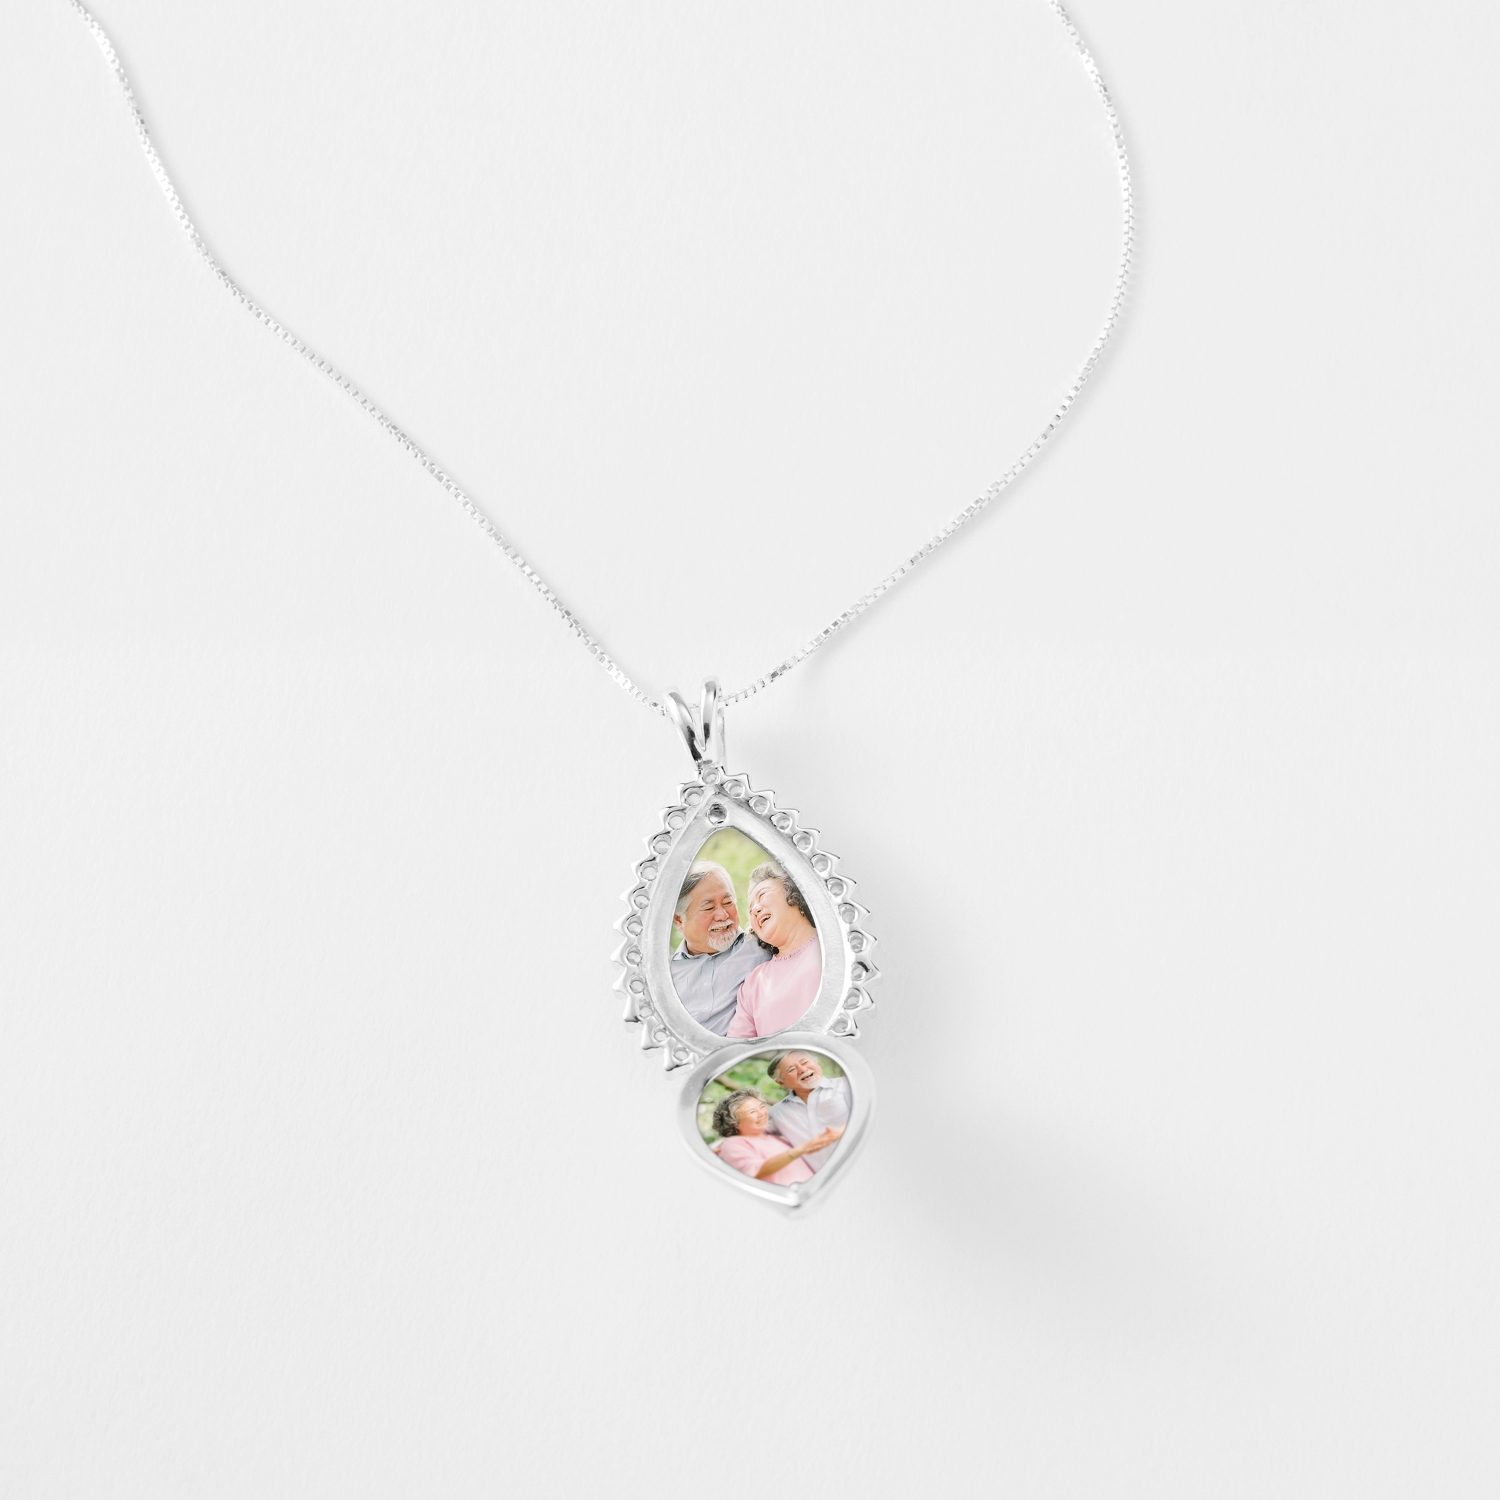 teardrop free locket australia chain jewellery diffuser necklace aromatherapy lockets design products